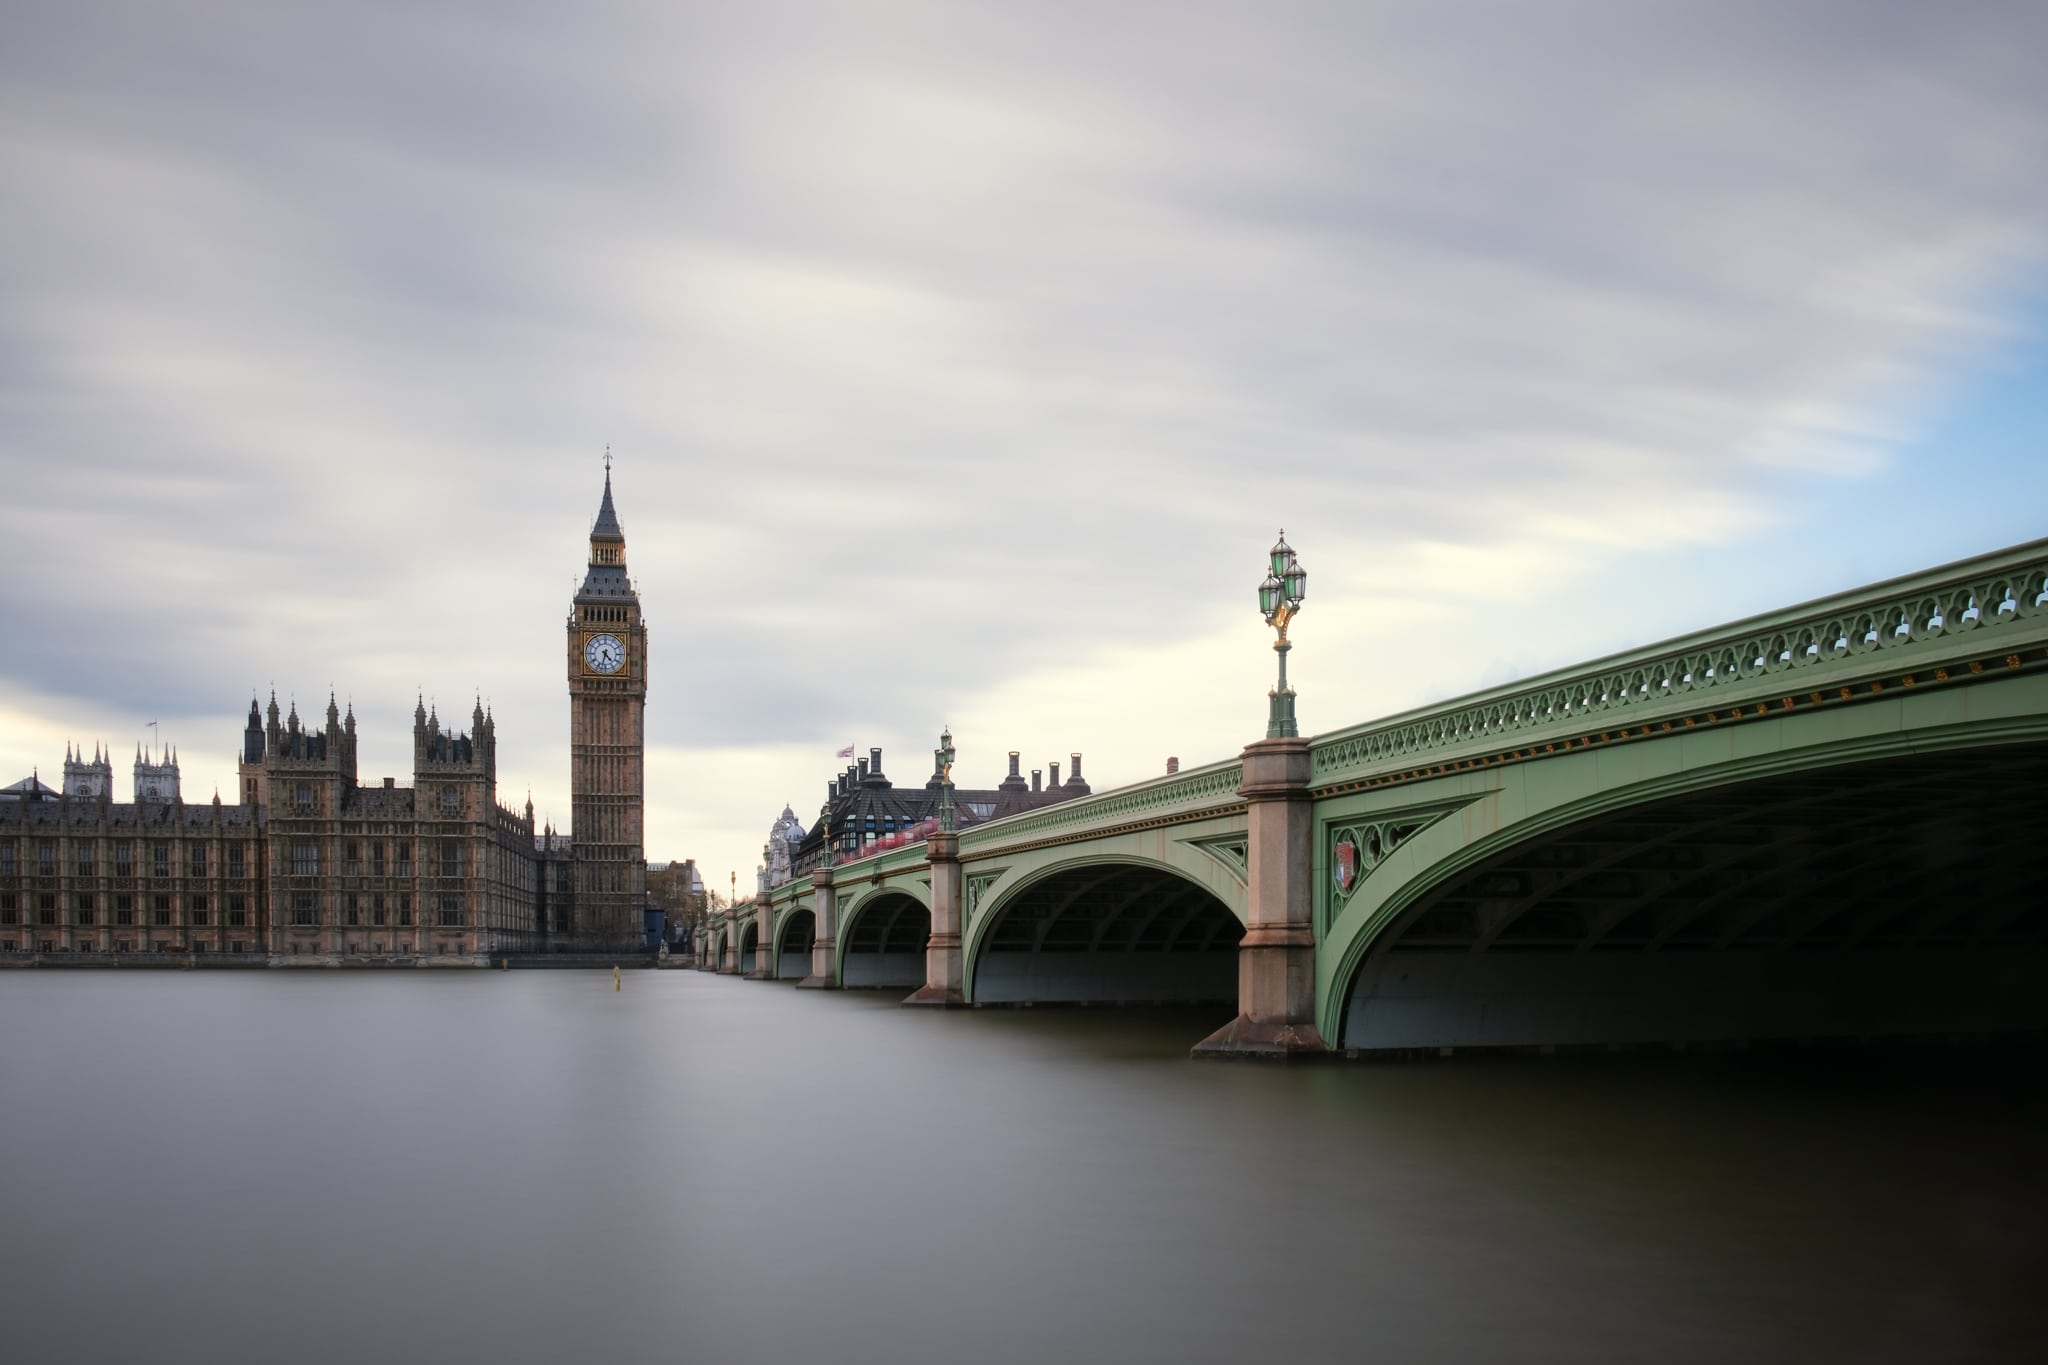 Westminster Bridge with the Palace of Westminster and the Big Ben. London, Uk. Because of the long exposure water and clouds look smooth and silky, and people look ghostly almost disappeared.